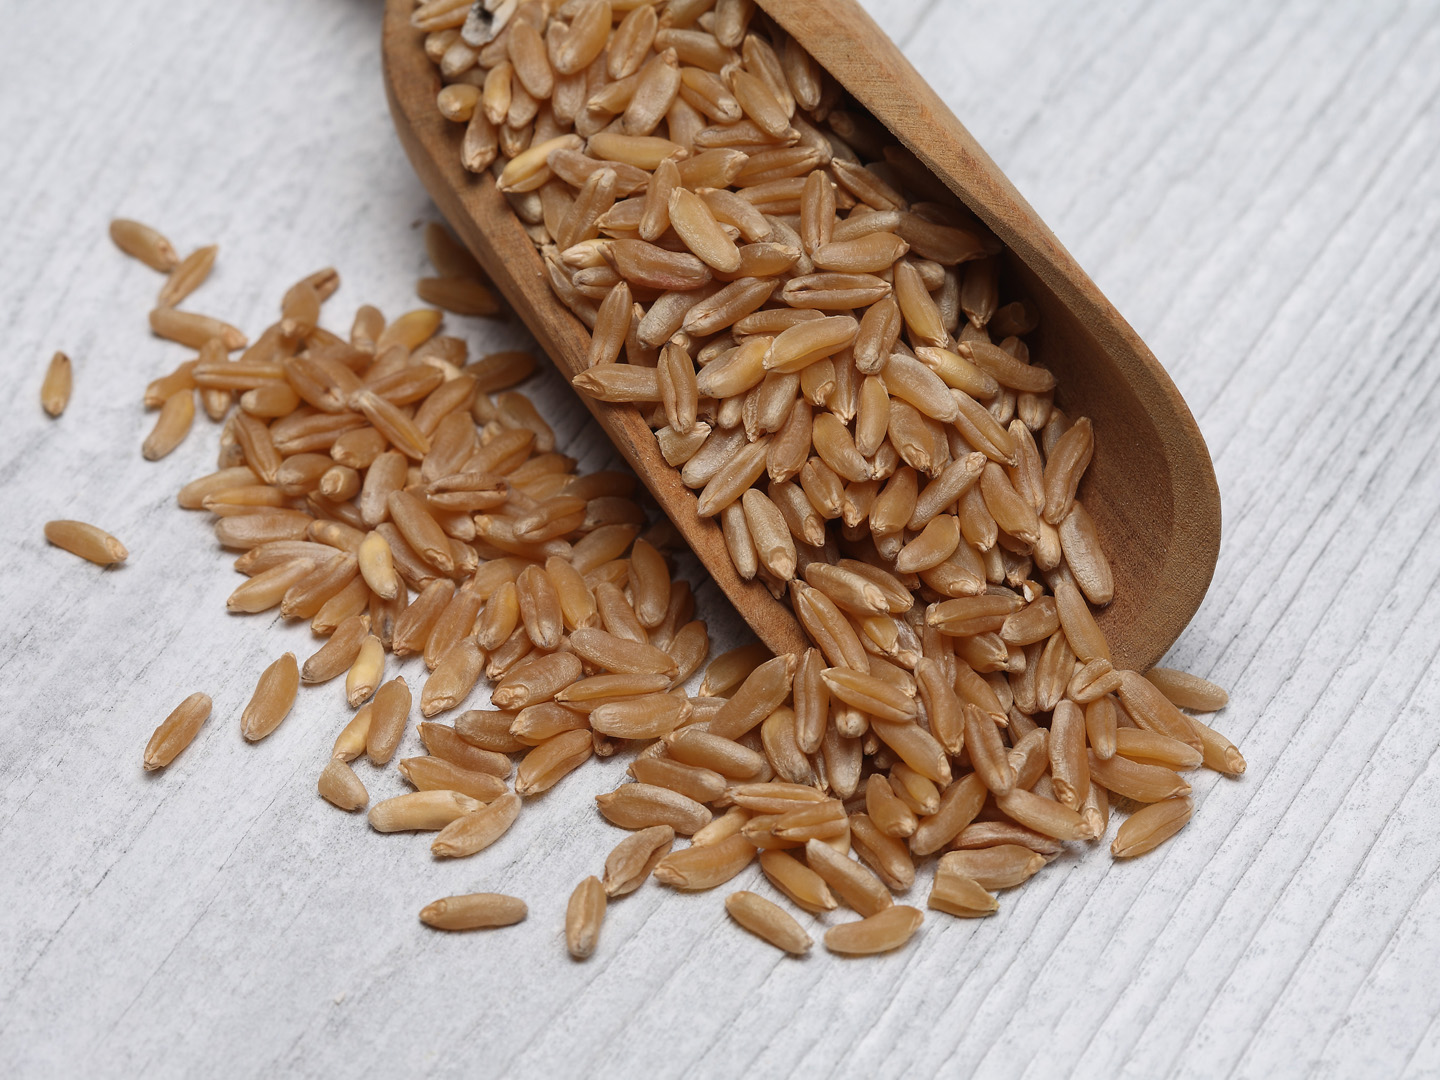 Cooking With Grains: Kamut - Dr. Weil's Healthy Kitchen